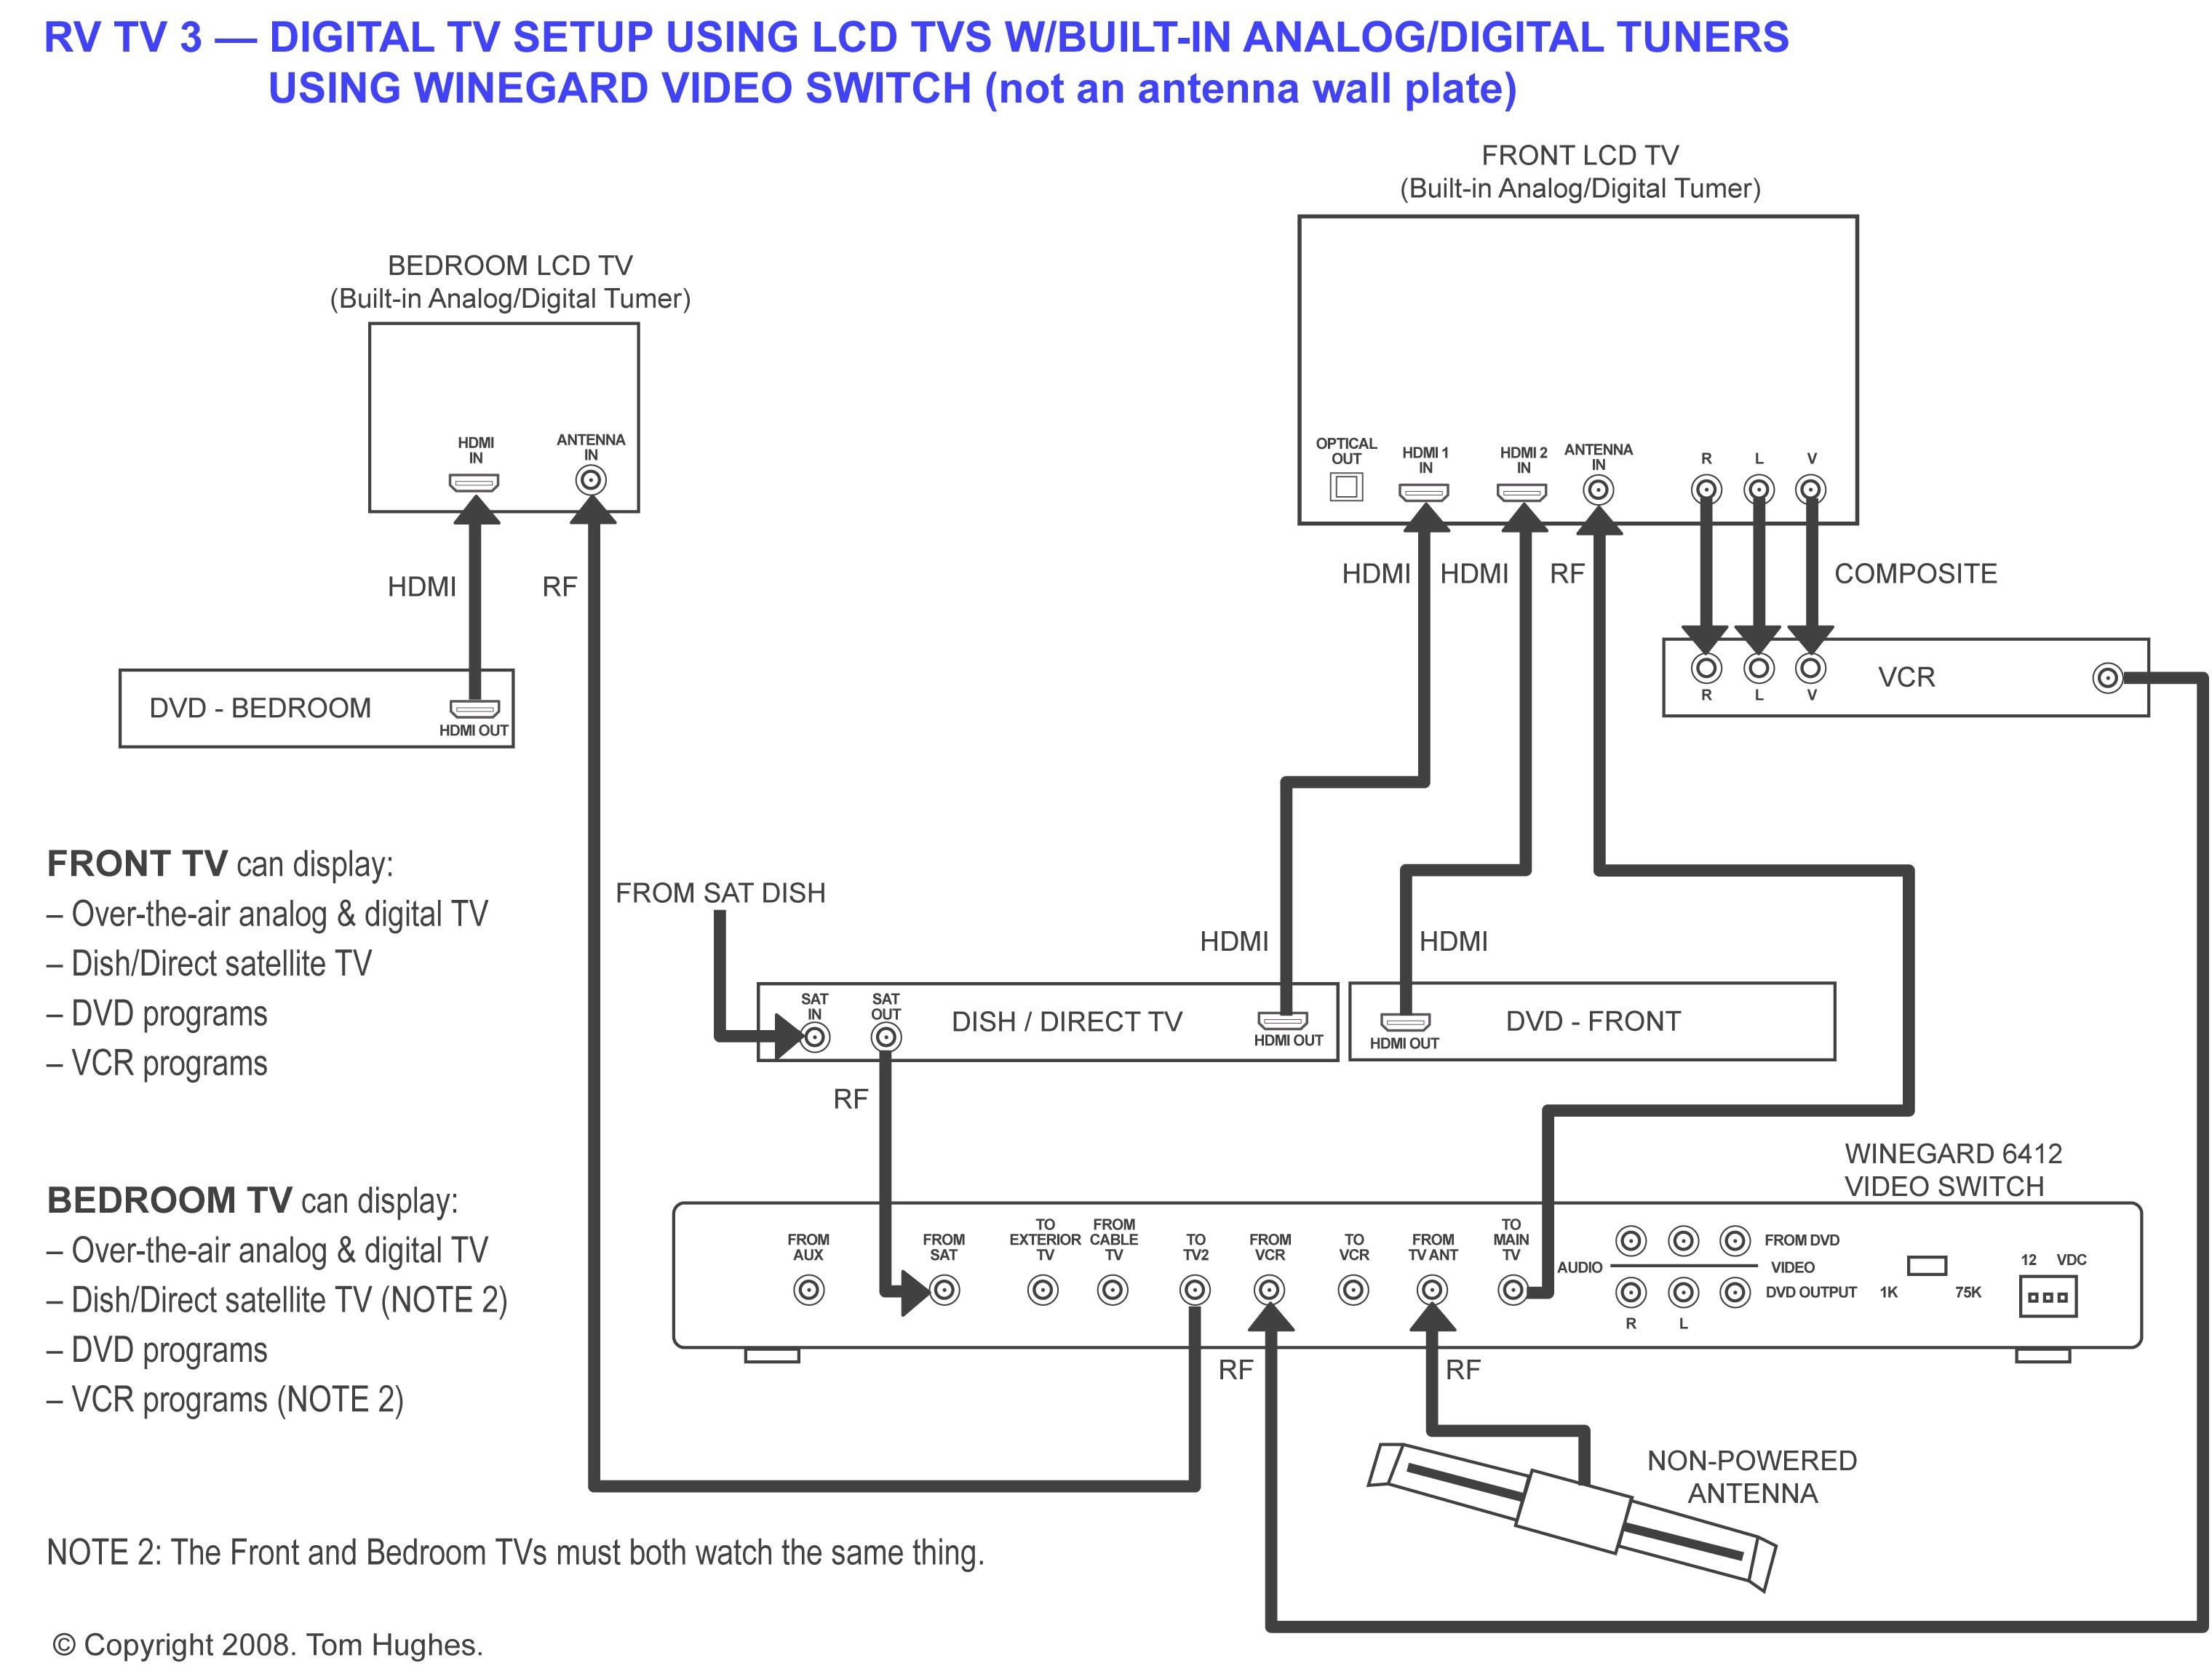 directv swm 8 wiring diagram Collection-Directv Swm 8 Wiring Diagram Best Great Genie S Electrical And 10-t